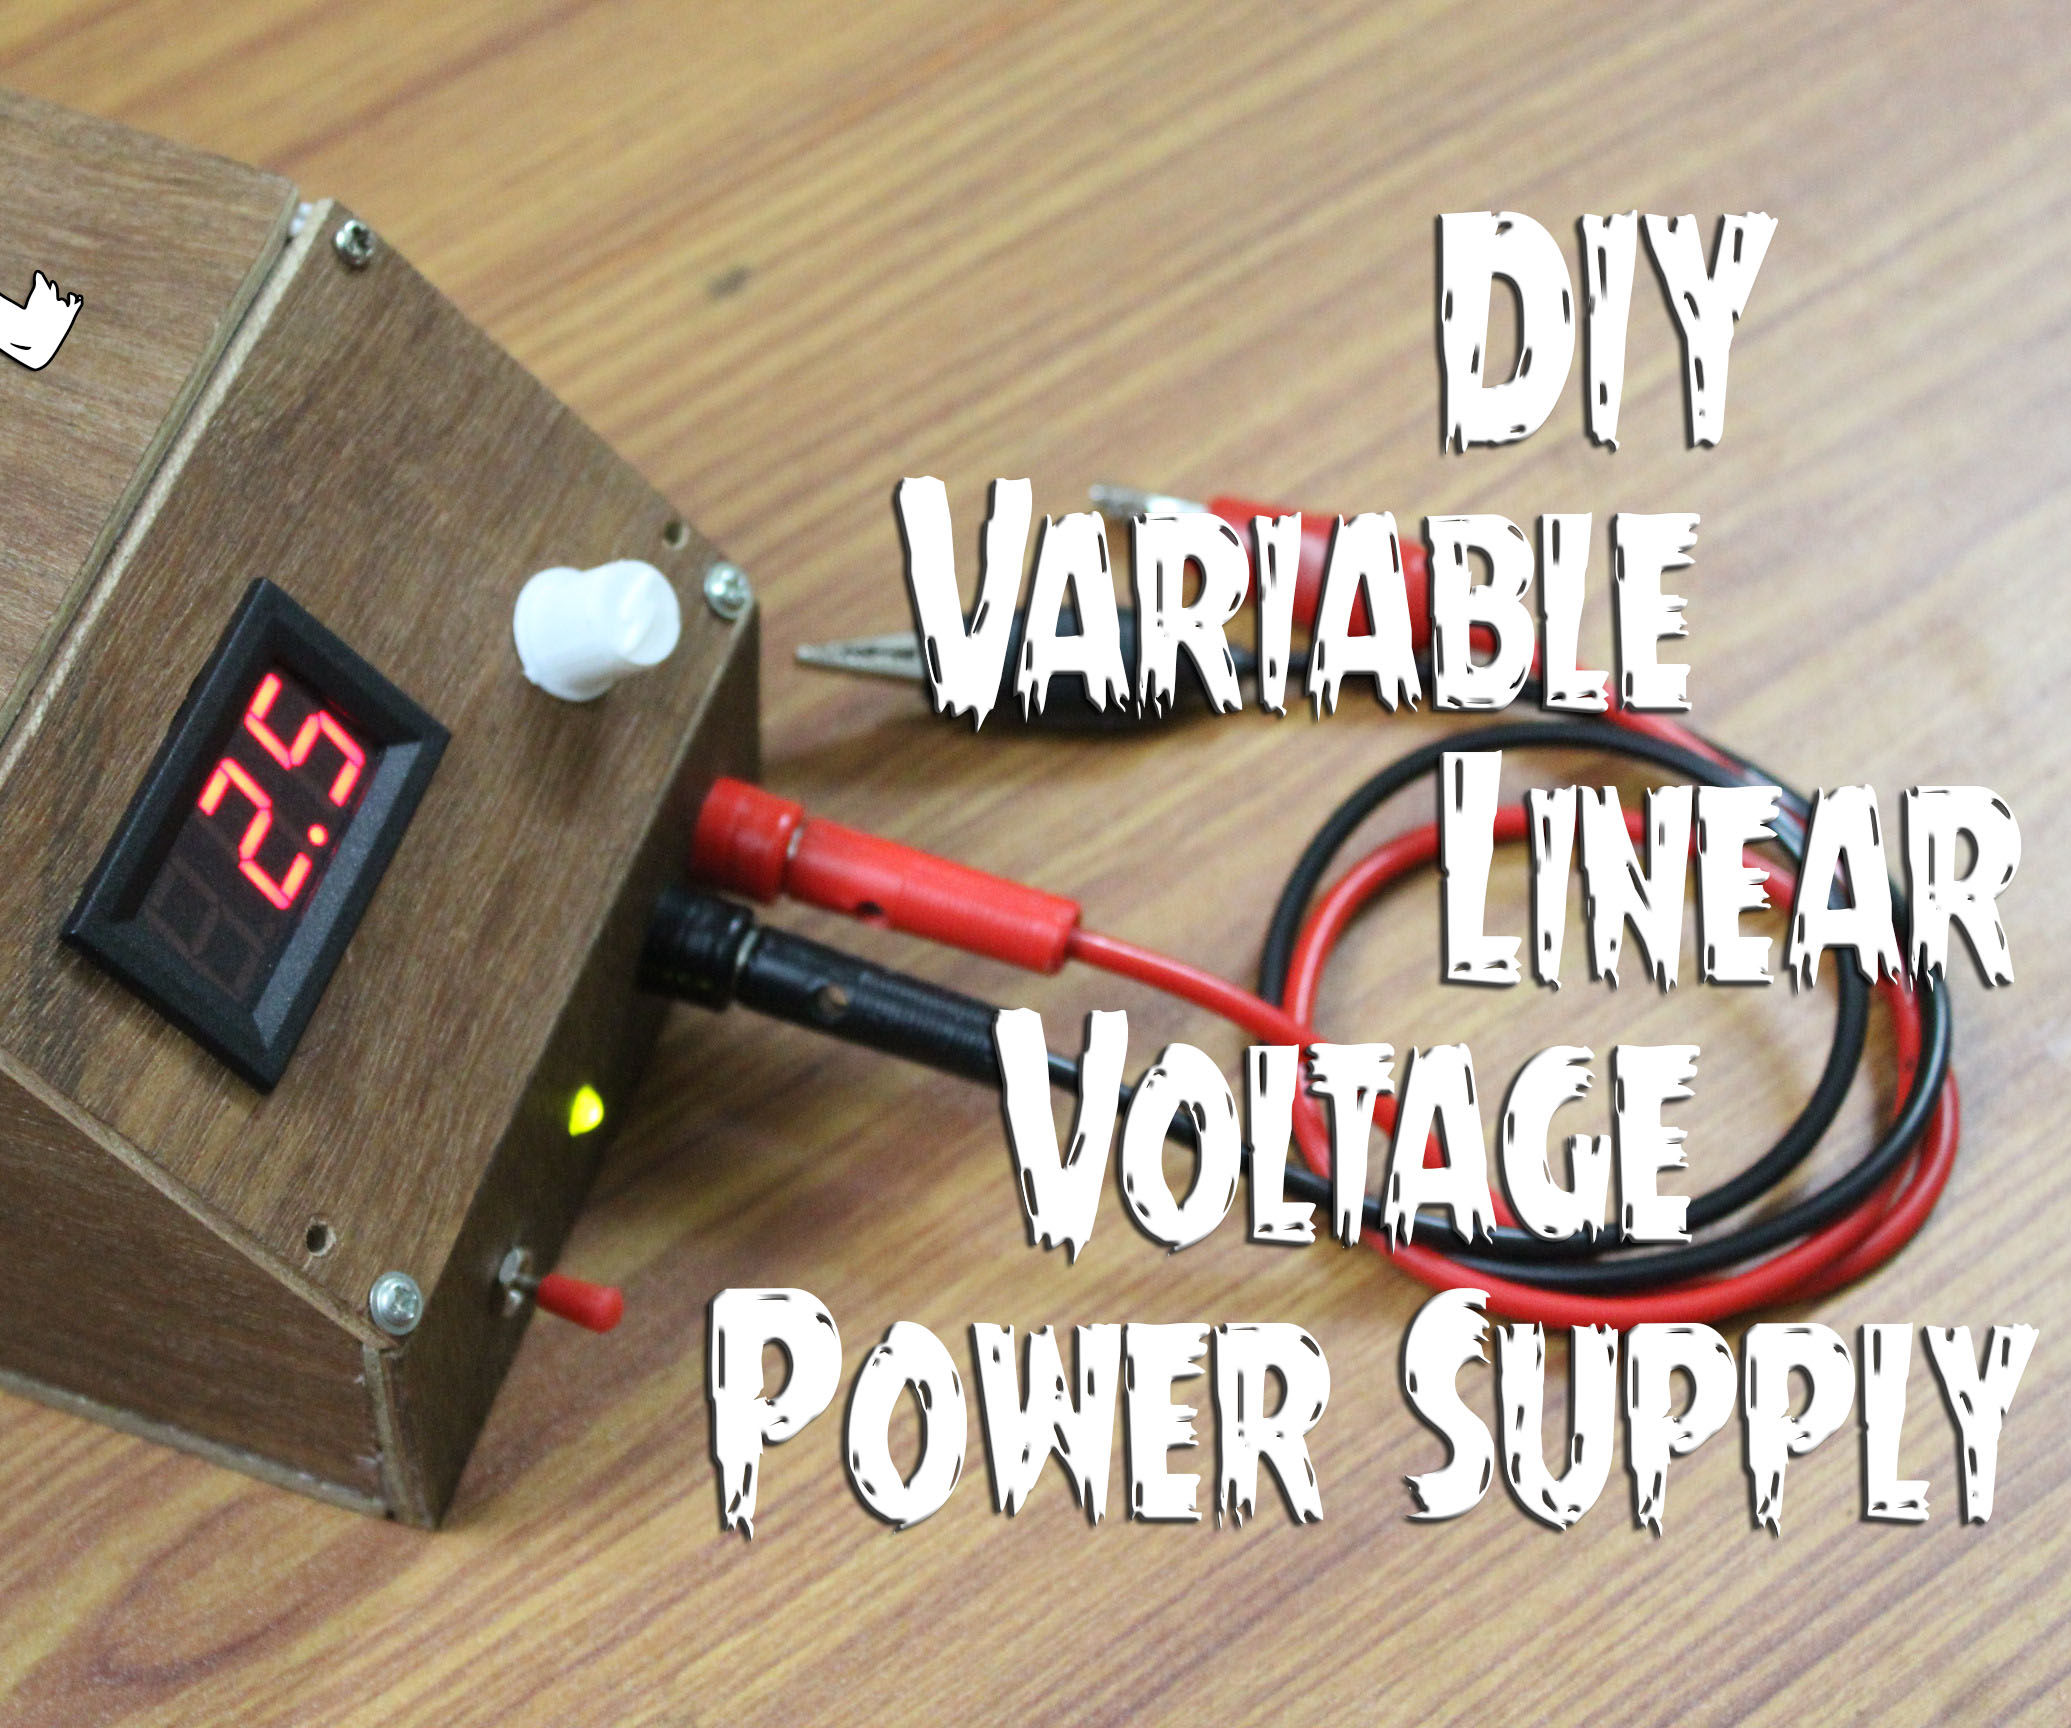 DIY Variable Linear Voltage Power Supply -Part 2